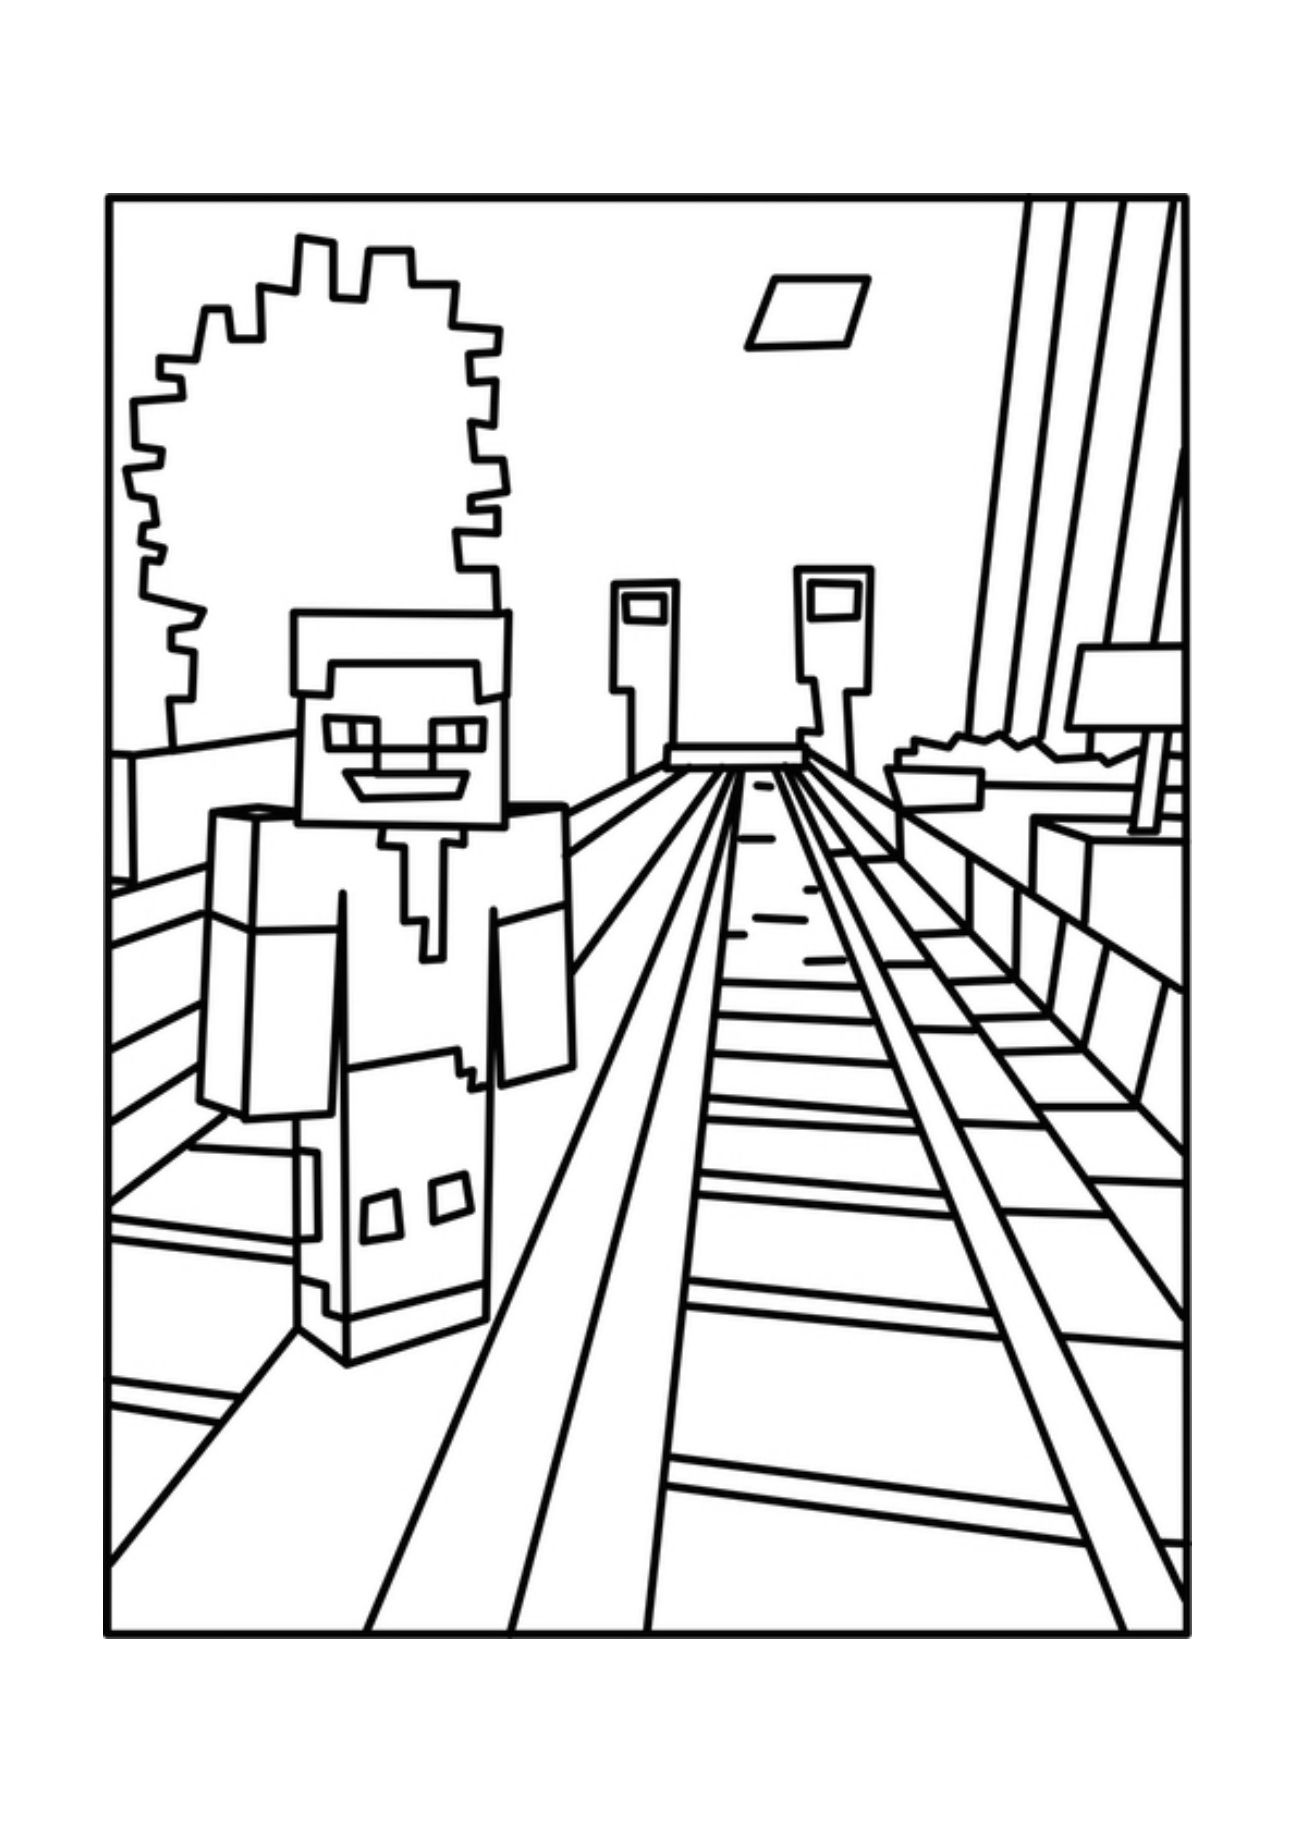 minecraft printouts minecraft coloring pages print and colorcom minecraft printouts